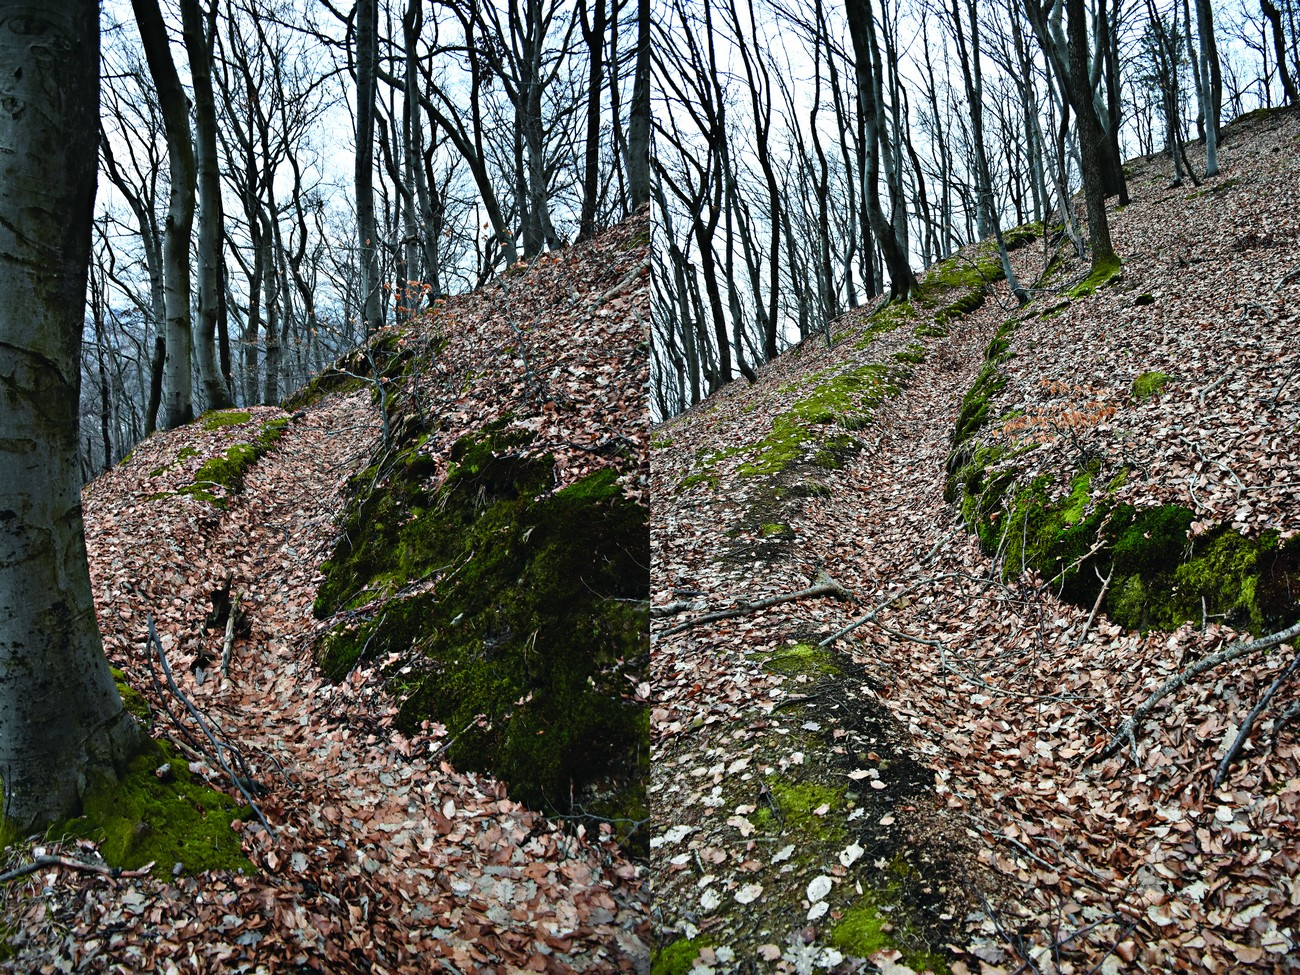 The terrain surrounding Rogaška Slatina and even in the town itself still clearly shows the remains of defensive fortifications. The photographs show the remains of a firing trench on Janina, a hill in the centre of Rogaška Slatina. Photo Daniel Siter